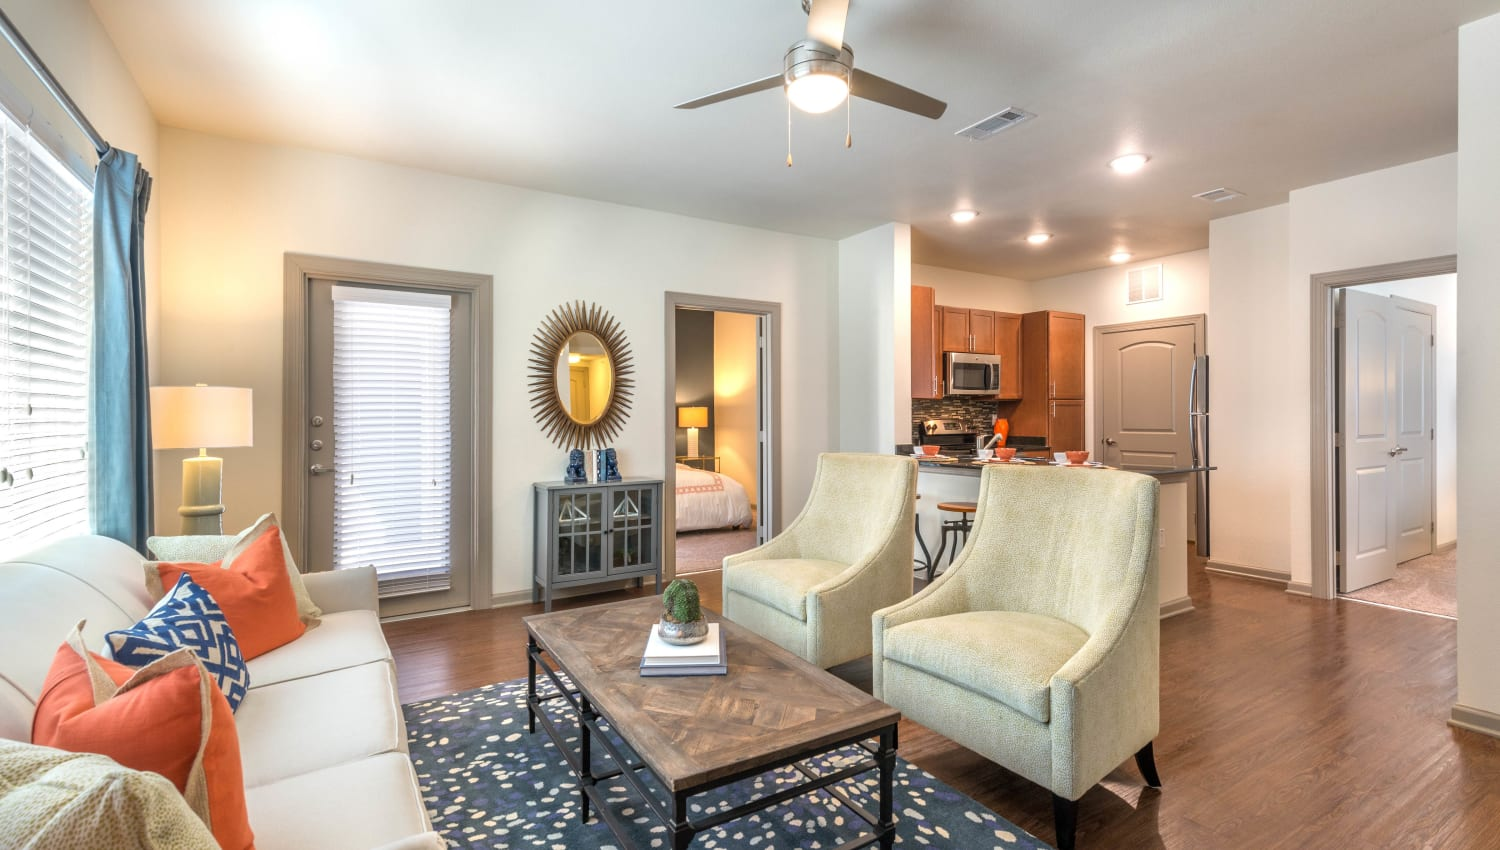 Well-furnished living space with a ceiling fan in a model home at Olympus Waterford in Keller, Texas